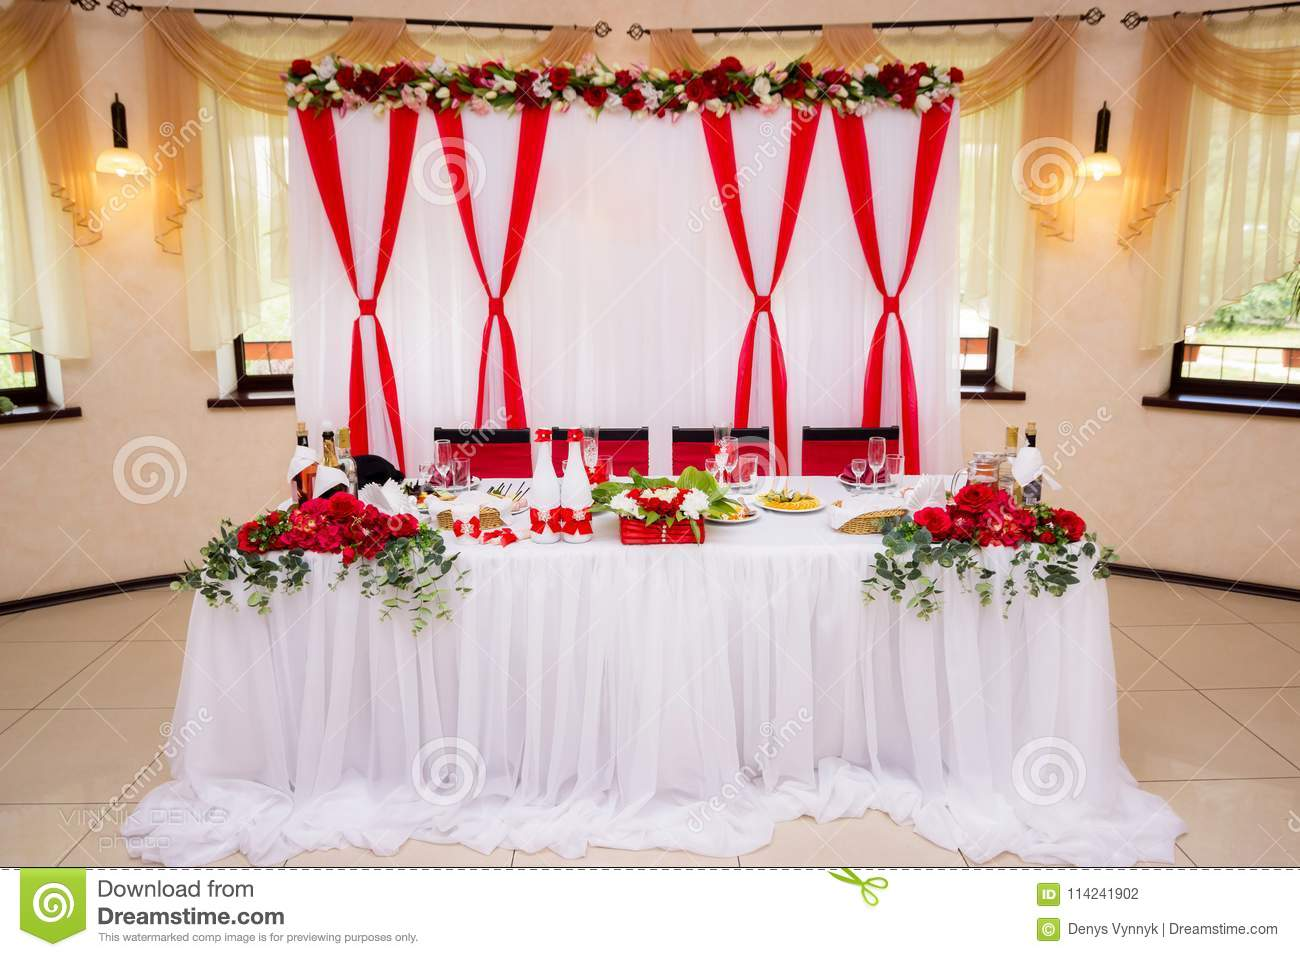 Red And White Wedding.Wedding Decorations Of White And Red Color On Table For Newlyweds